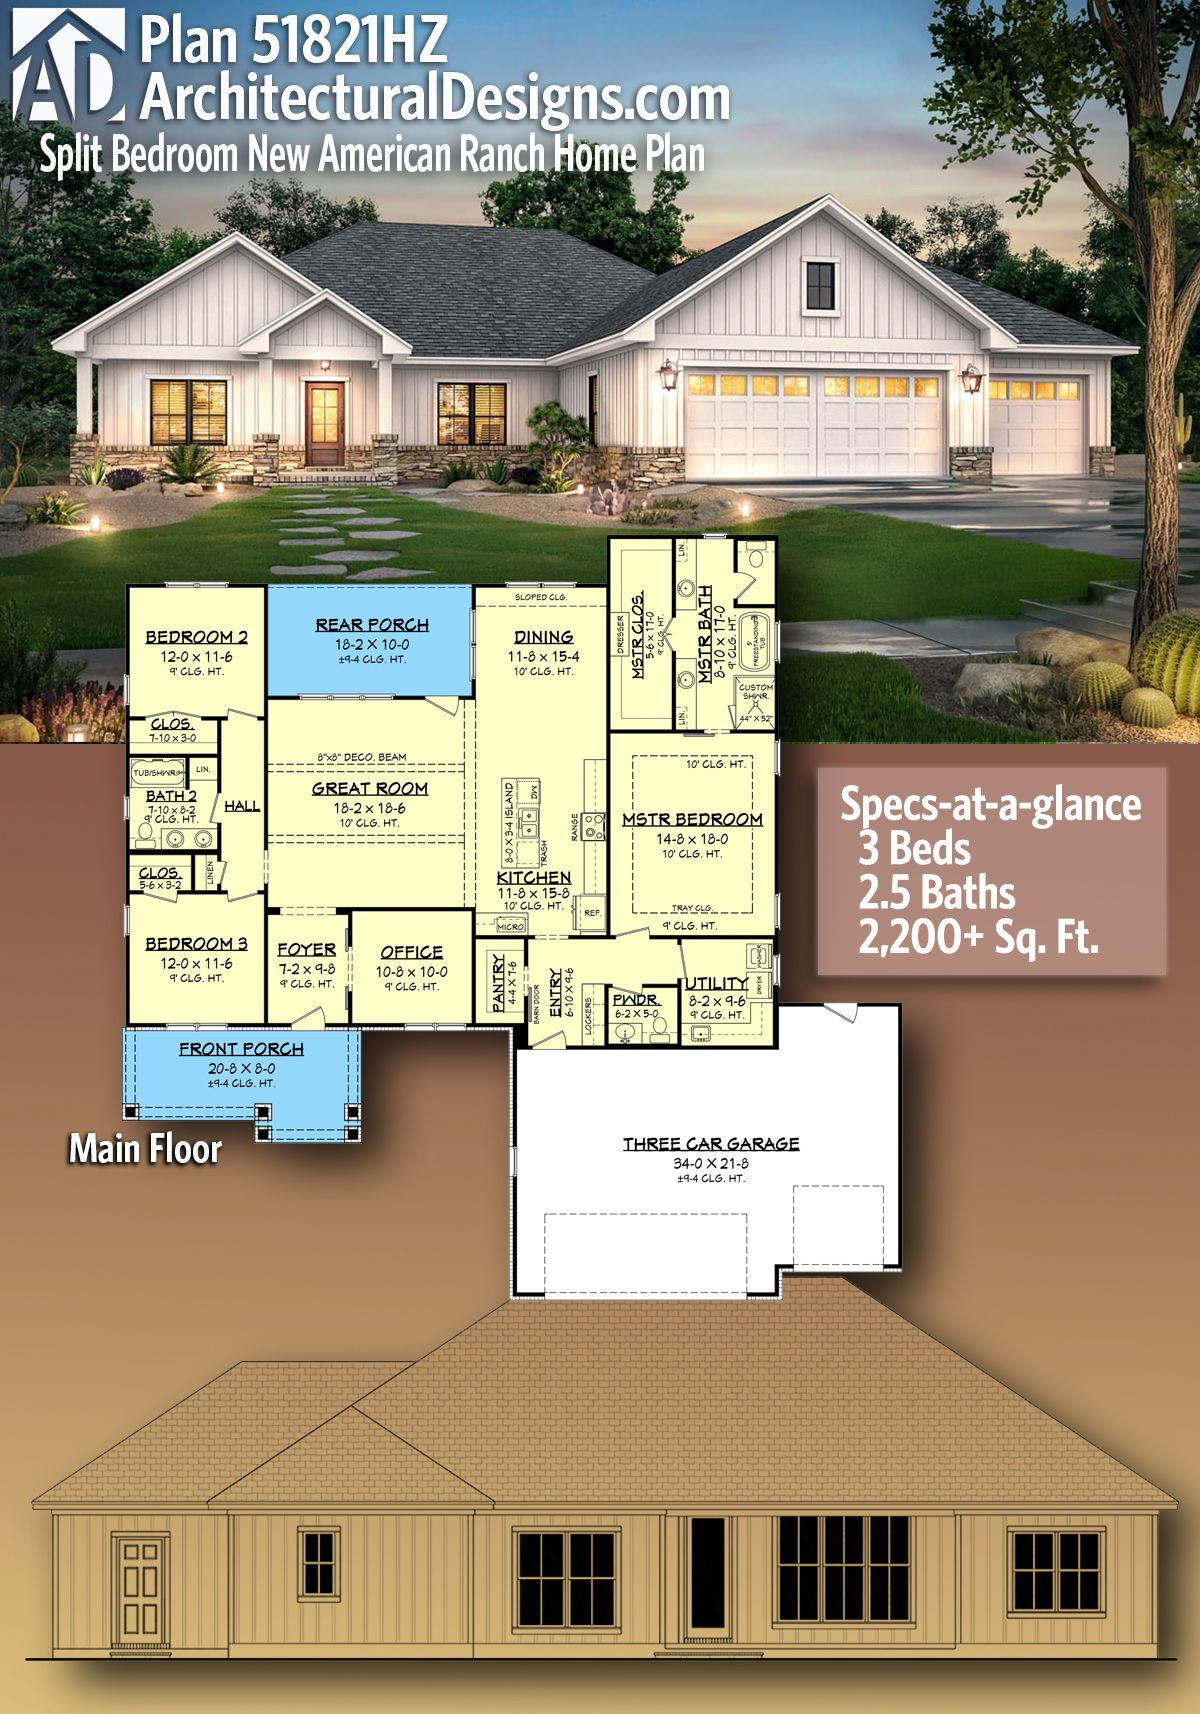 Plan 51821hz Split Bedroom New American Ranch Home Plan Dream House Plans Ranch House Ranch House Plan